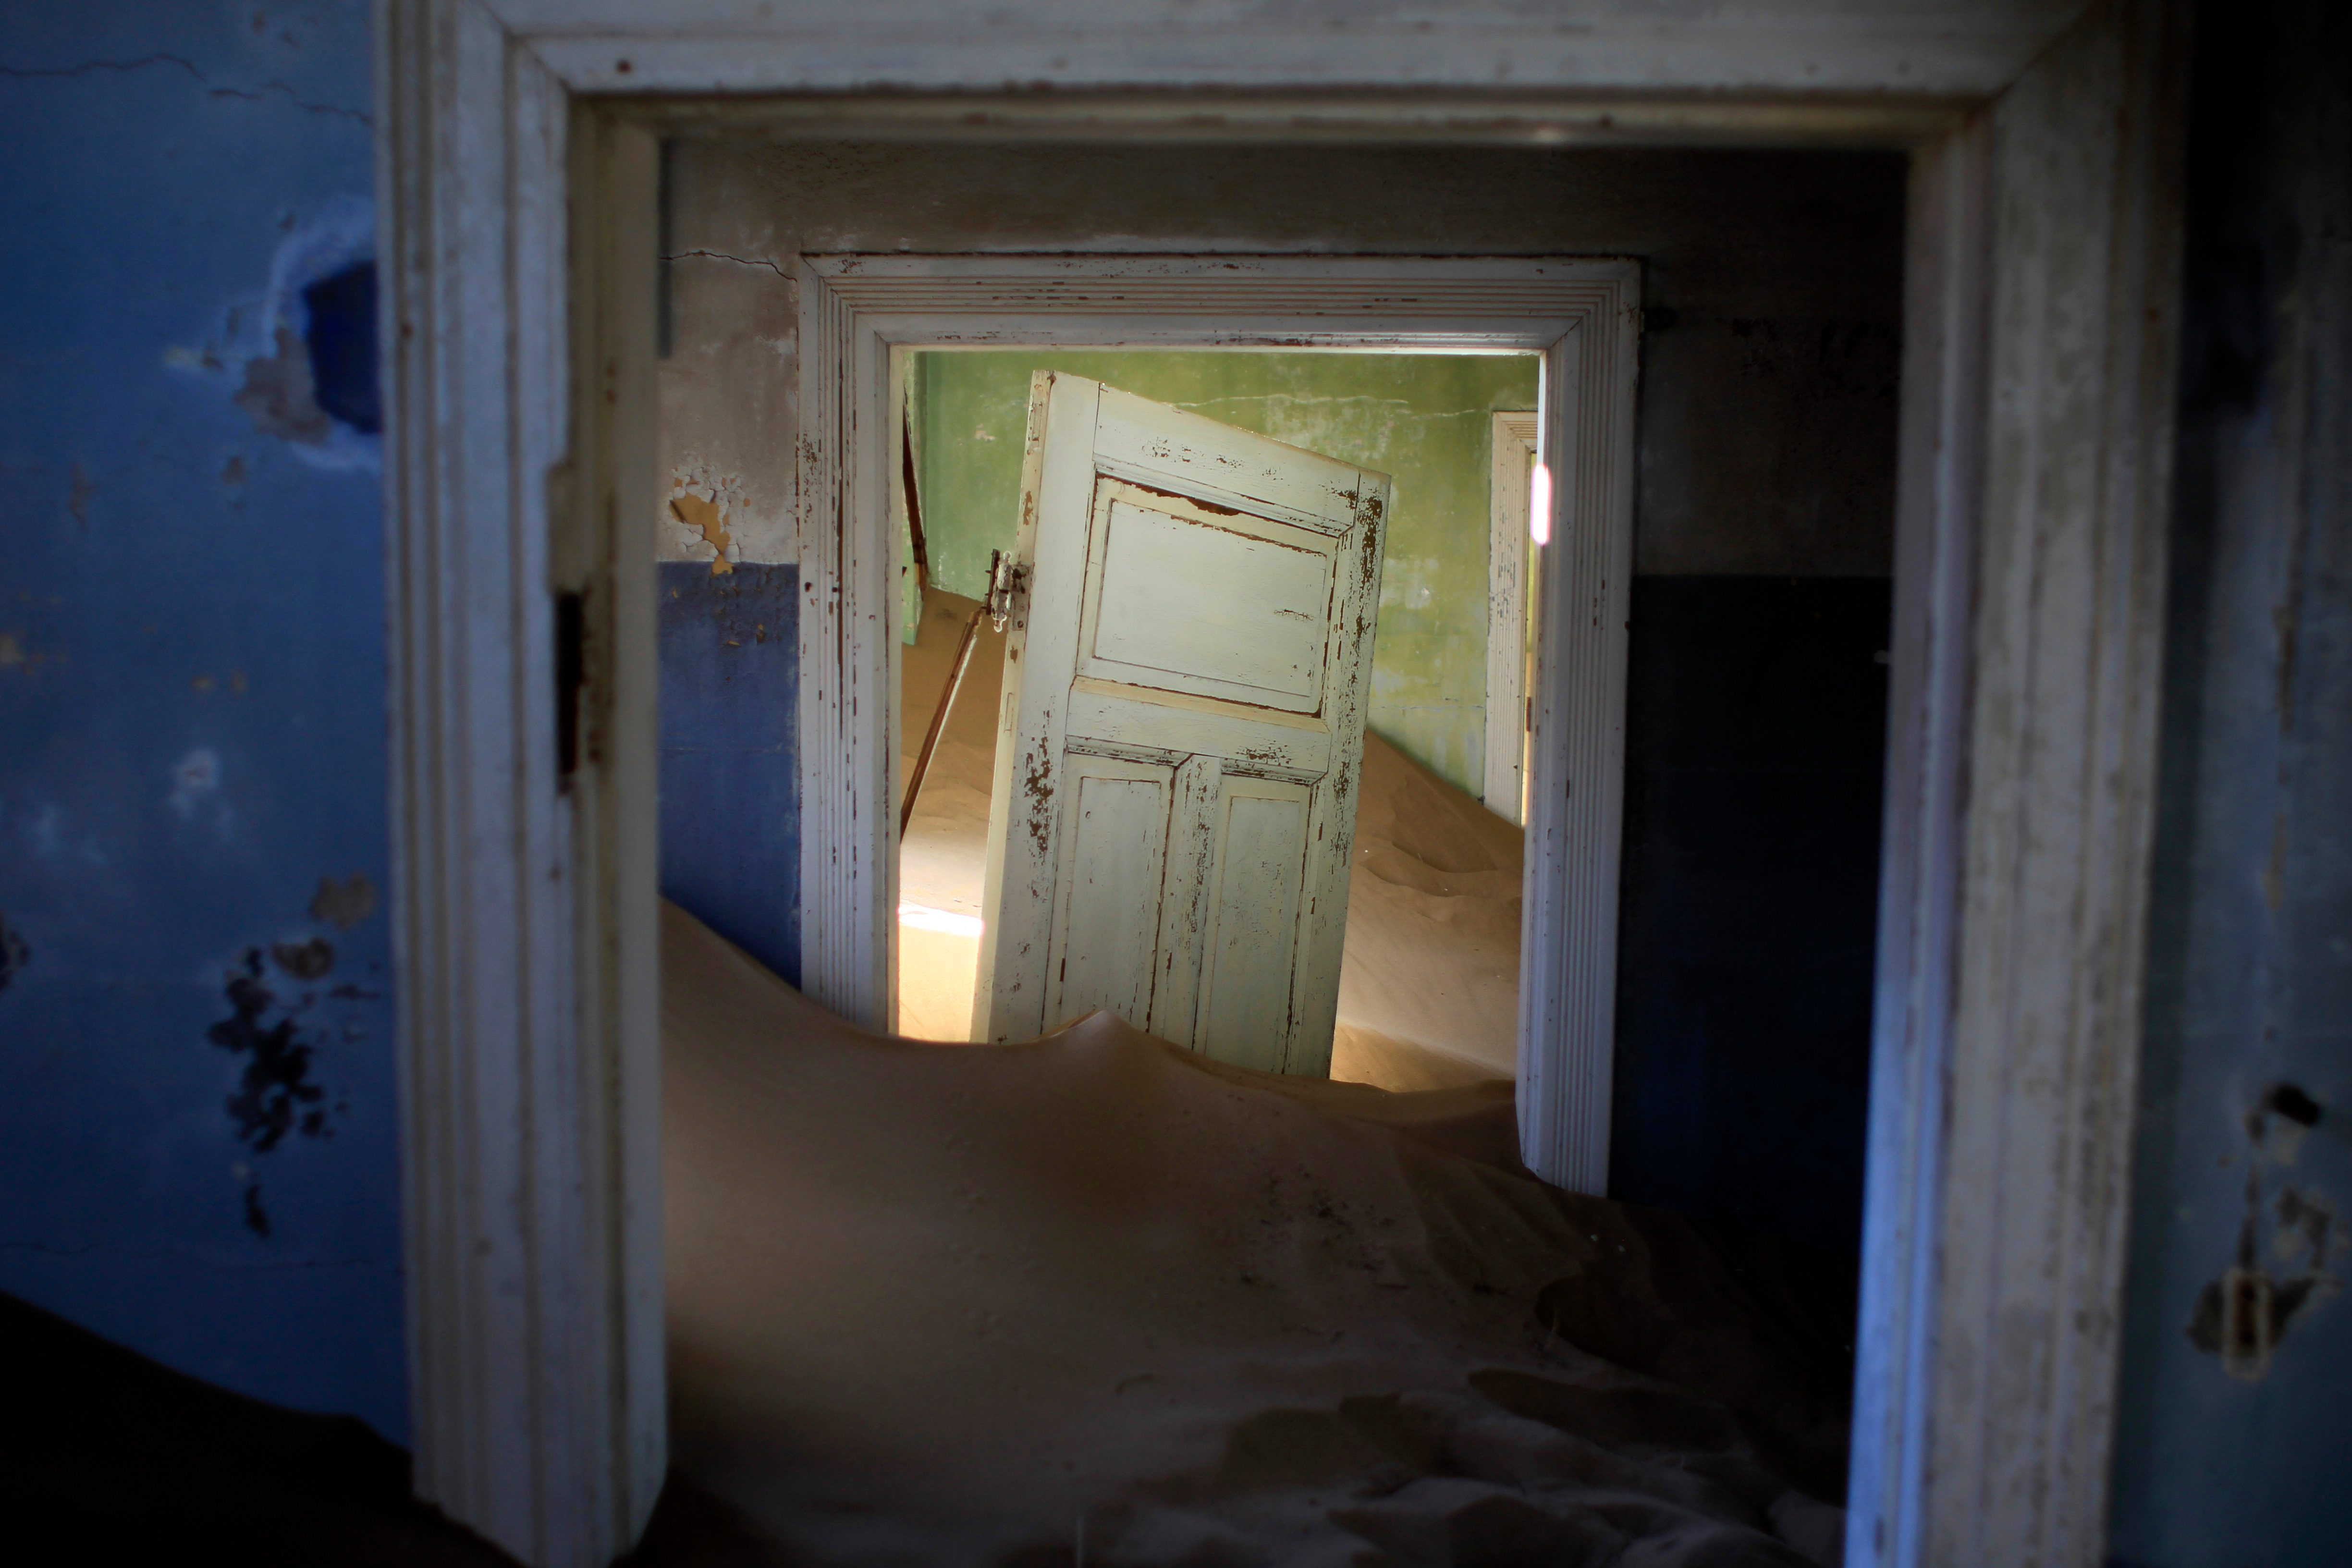 Mandatory Credit: Photo by Jerome Delay/AP/Shutterstock (9584292a) Sand fills an abandoned house in Kolmanskop, Namibia. Kolmanskop, was a diamond mining town south of Namibia, build in 1908 and deserted in 1956. SInce then, the desert slowly reclaims its territory, with sand invading the buildings where 350 German colonists and more than 800 local workers lived during its hay-days of the 1920s Evergreen Enterprise World Abandoned Places Photo Gallery, Kolmanskop, Namibia - 23 Jul 2013